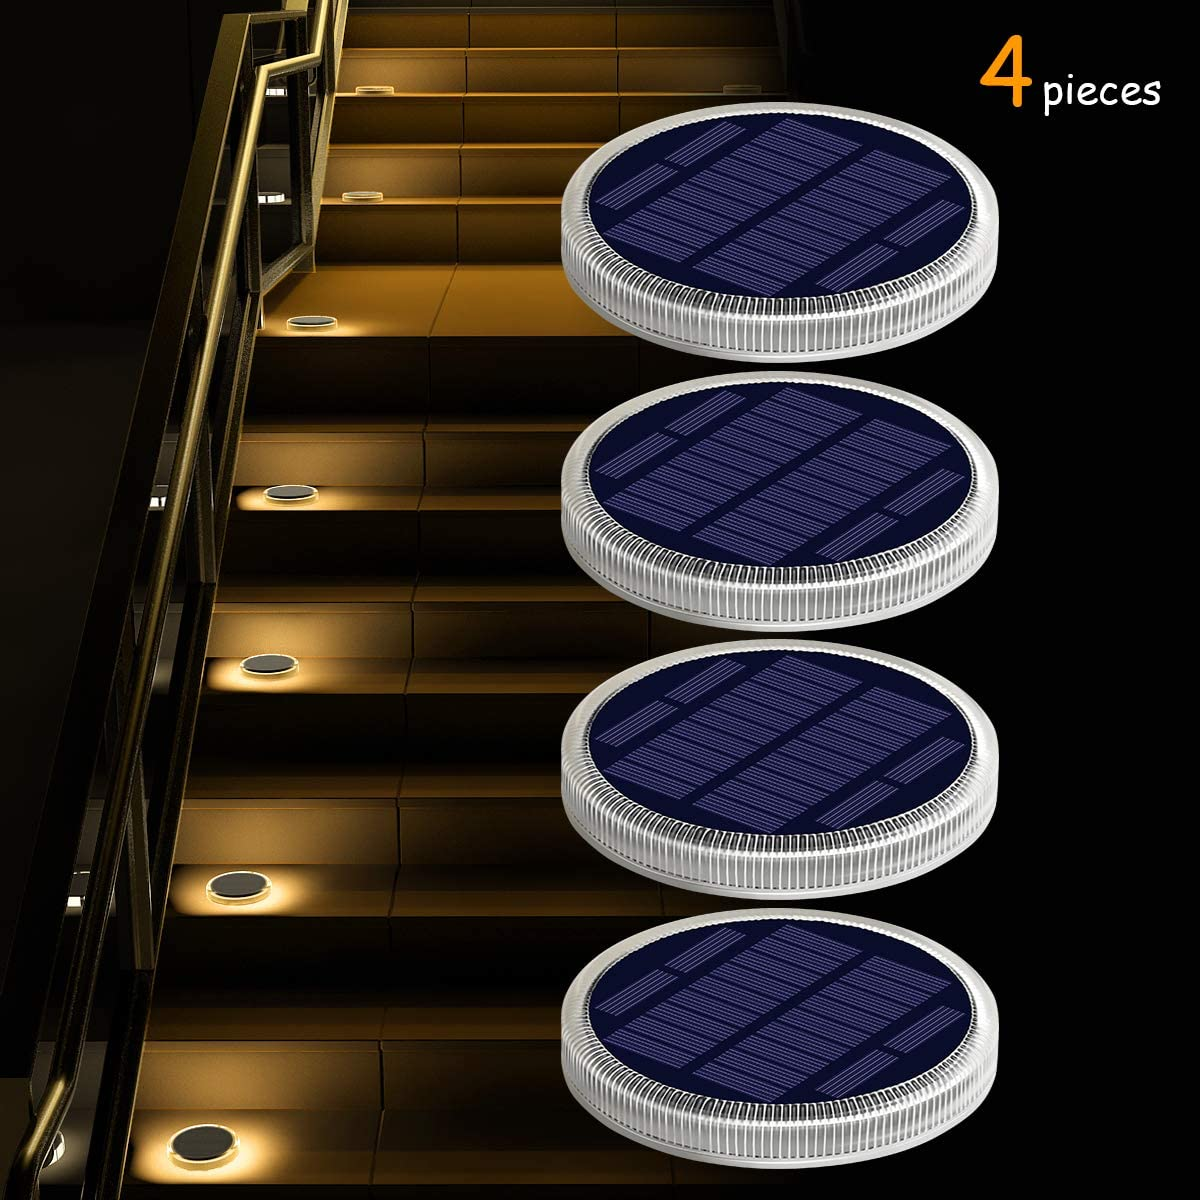 Solar Deck Lights Outdoor Waterproof, Garden Driveway Walkway Pathway Ground Step Dock Lights Solar Powered, LED Solar Lighting for Backyard Patio Lawn, auto ON Off – Warm White 4 Pack